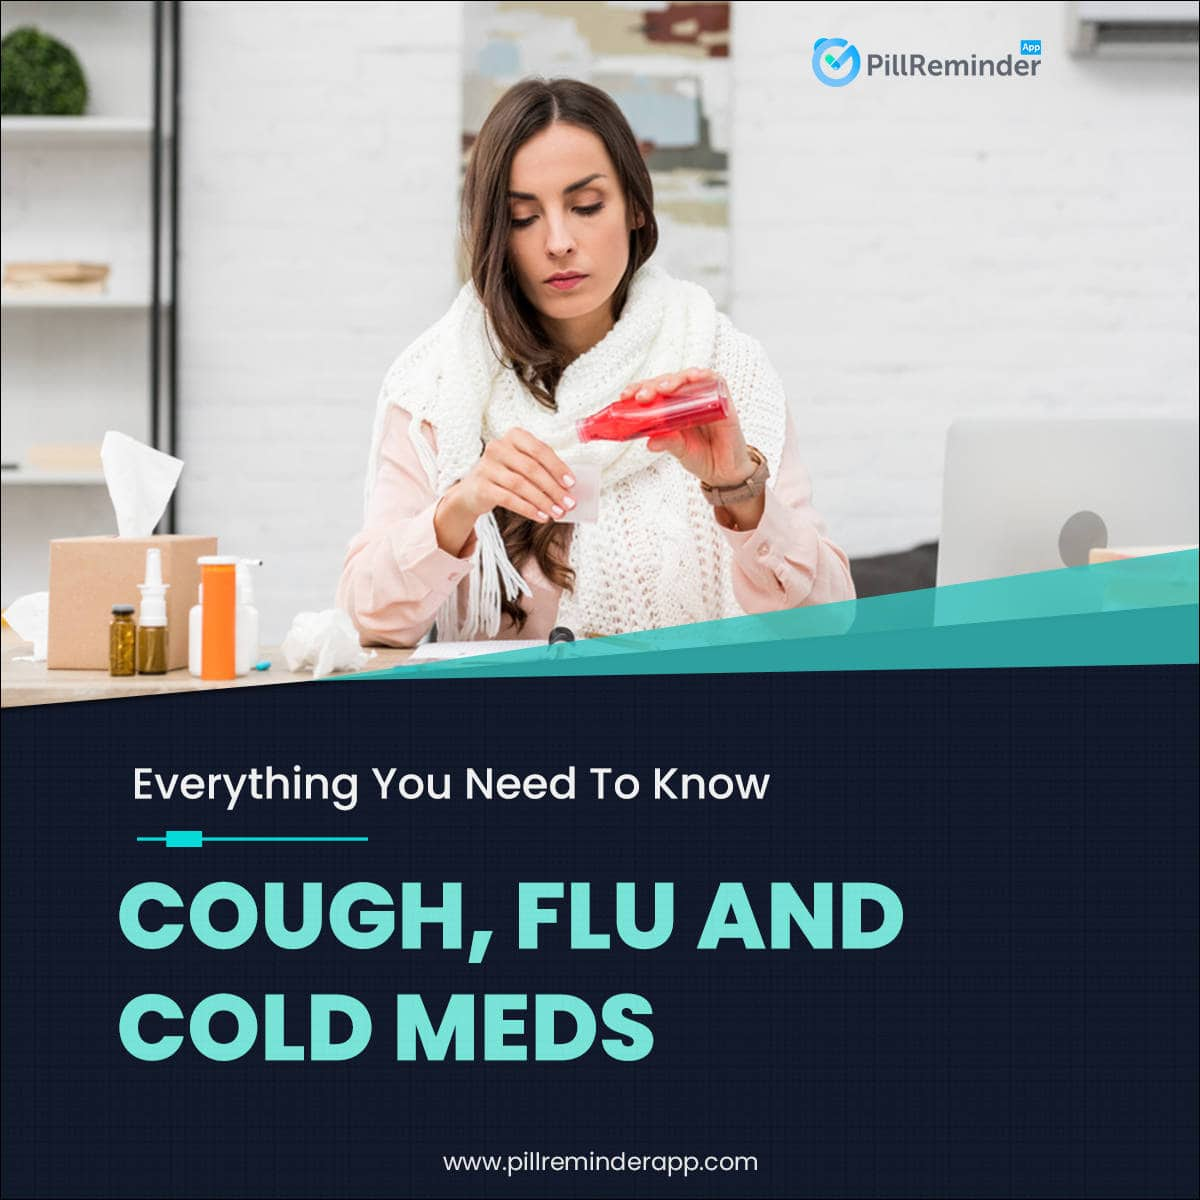 Everything You Need To Know About Cough, Flu And Cold Meds